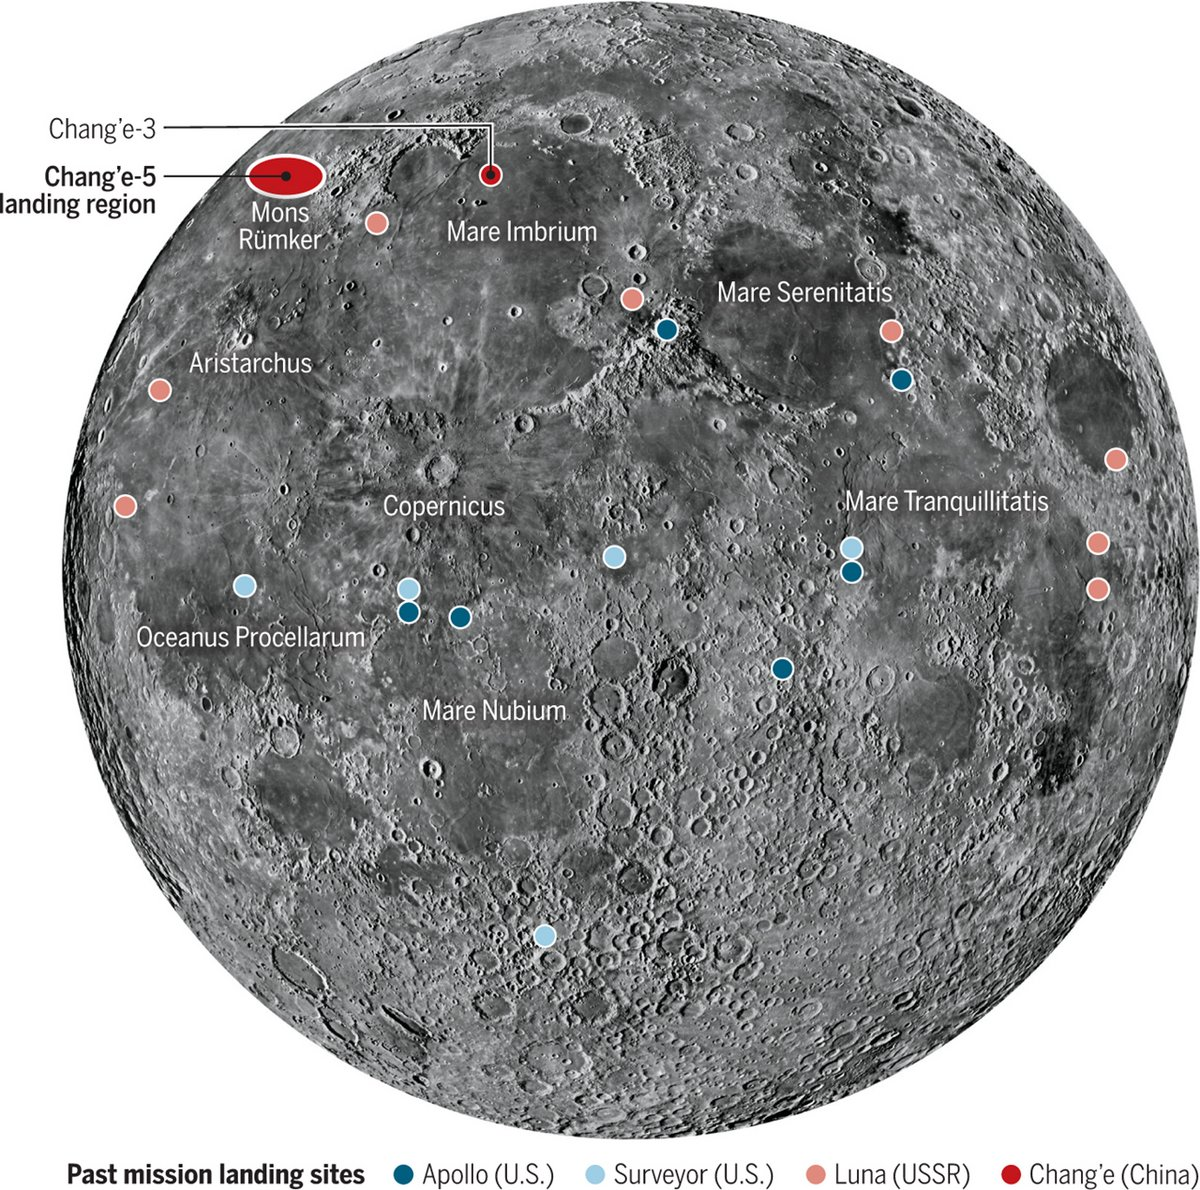 Chang'E 5 zone atterrissage lunaire © CNSA/CLEP/Science mag